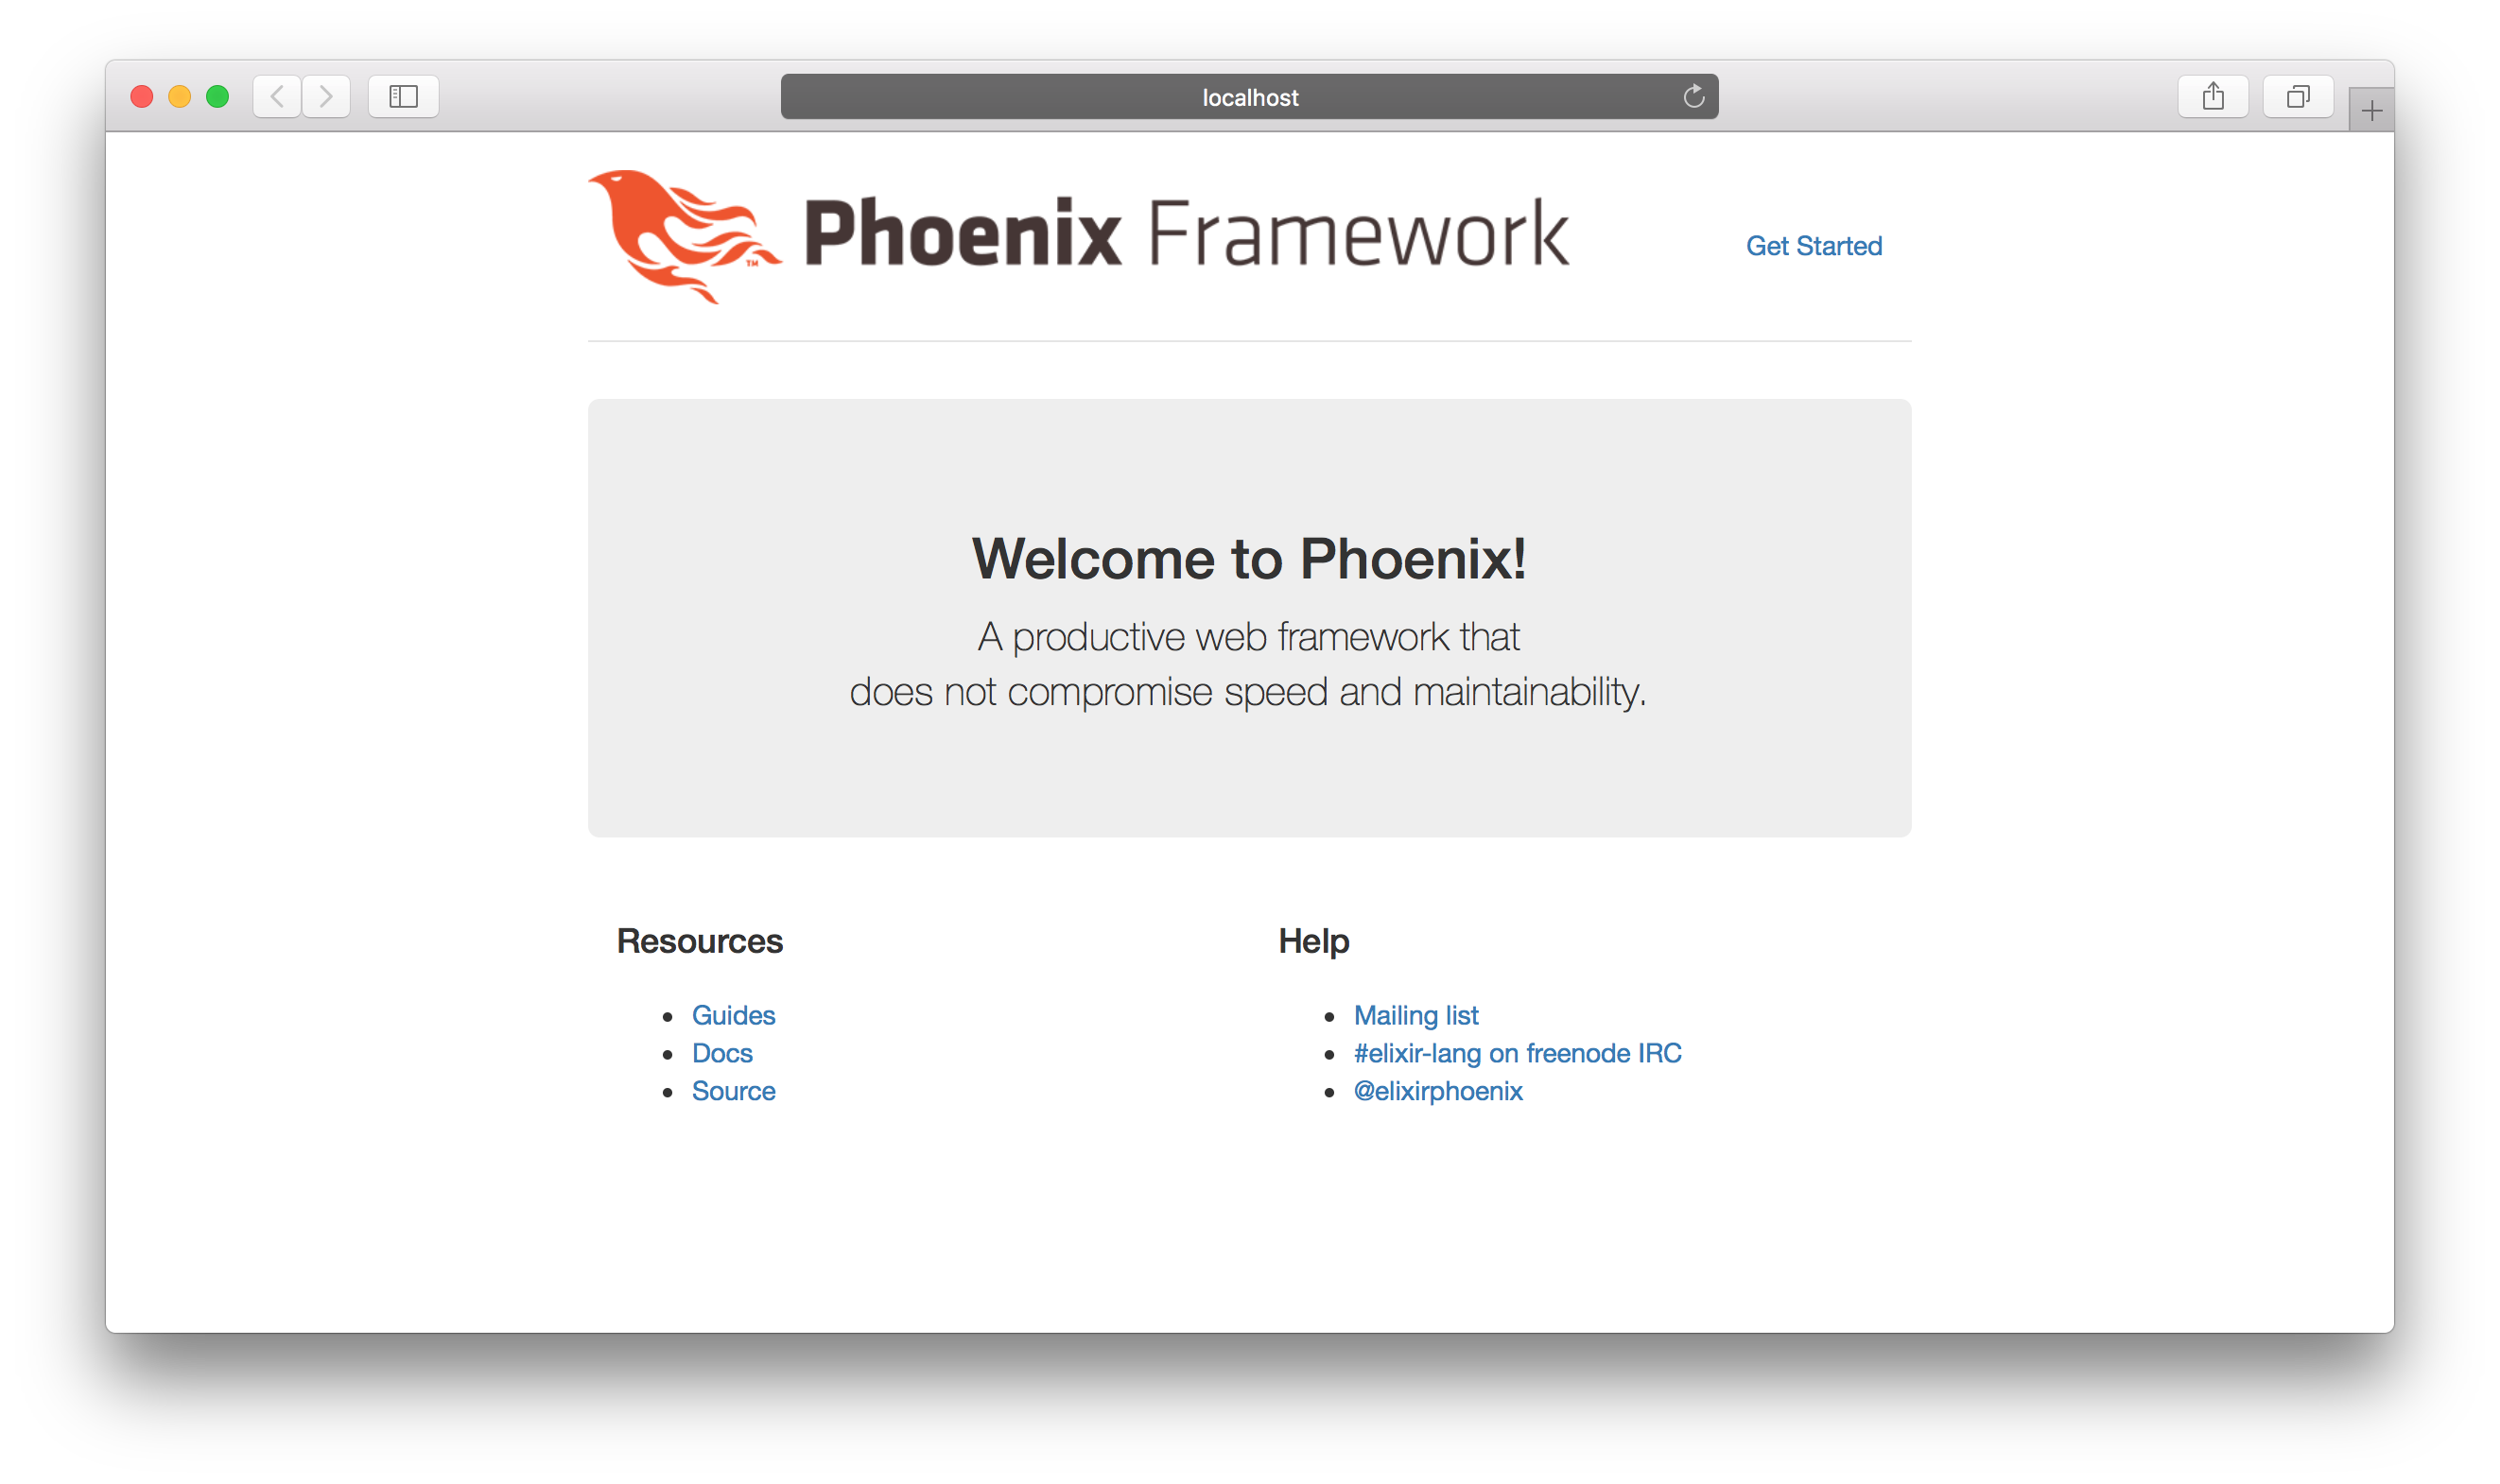 Phoenix - first steps | What did I learn